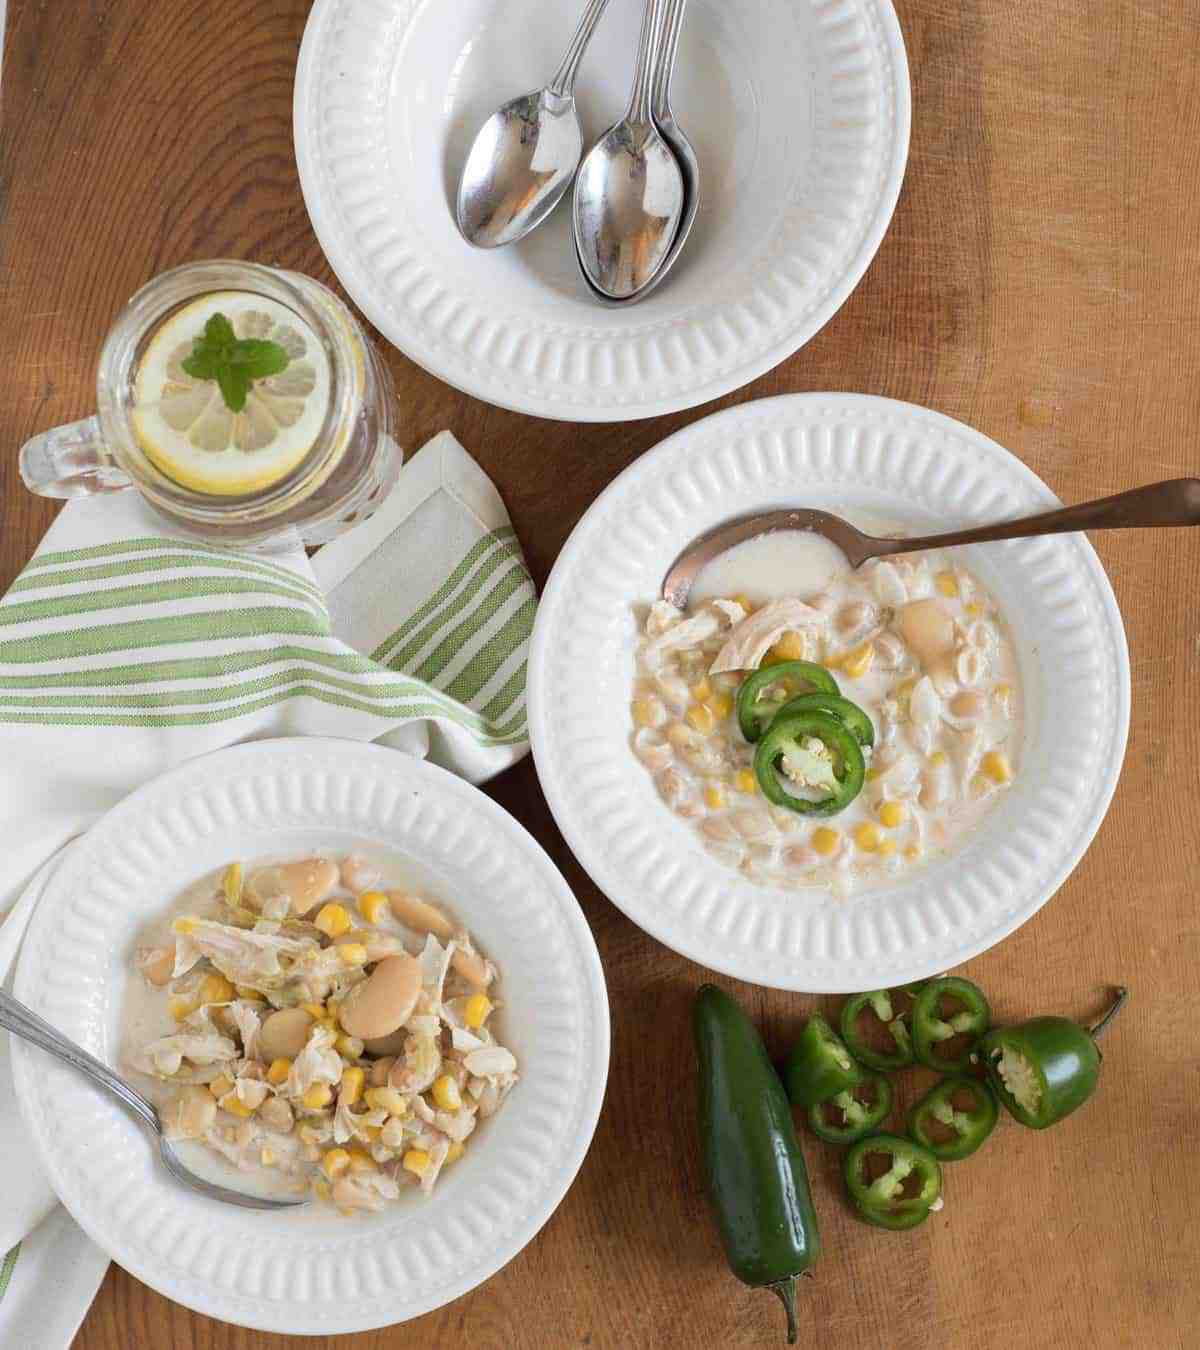 The best creamy slow cooker white chicken chili on the block. This recipes is super easy to make, cooks by itself, and is a chili cook off winning recipe.